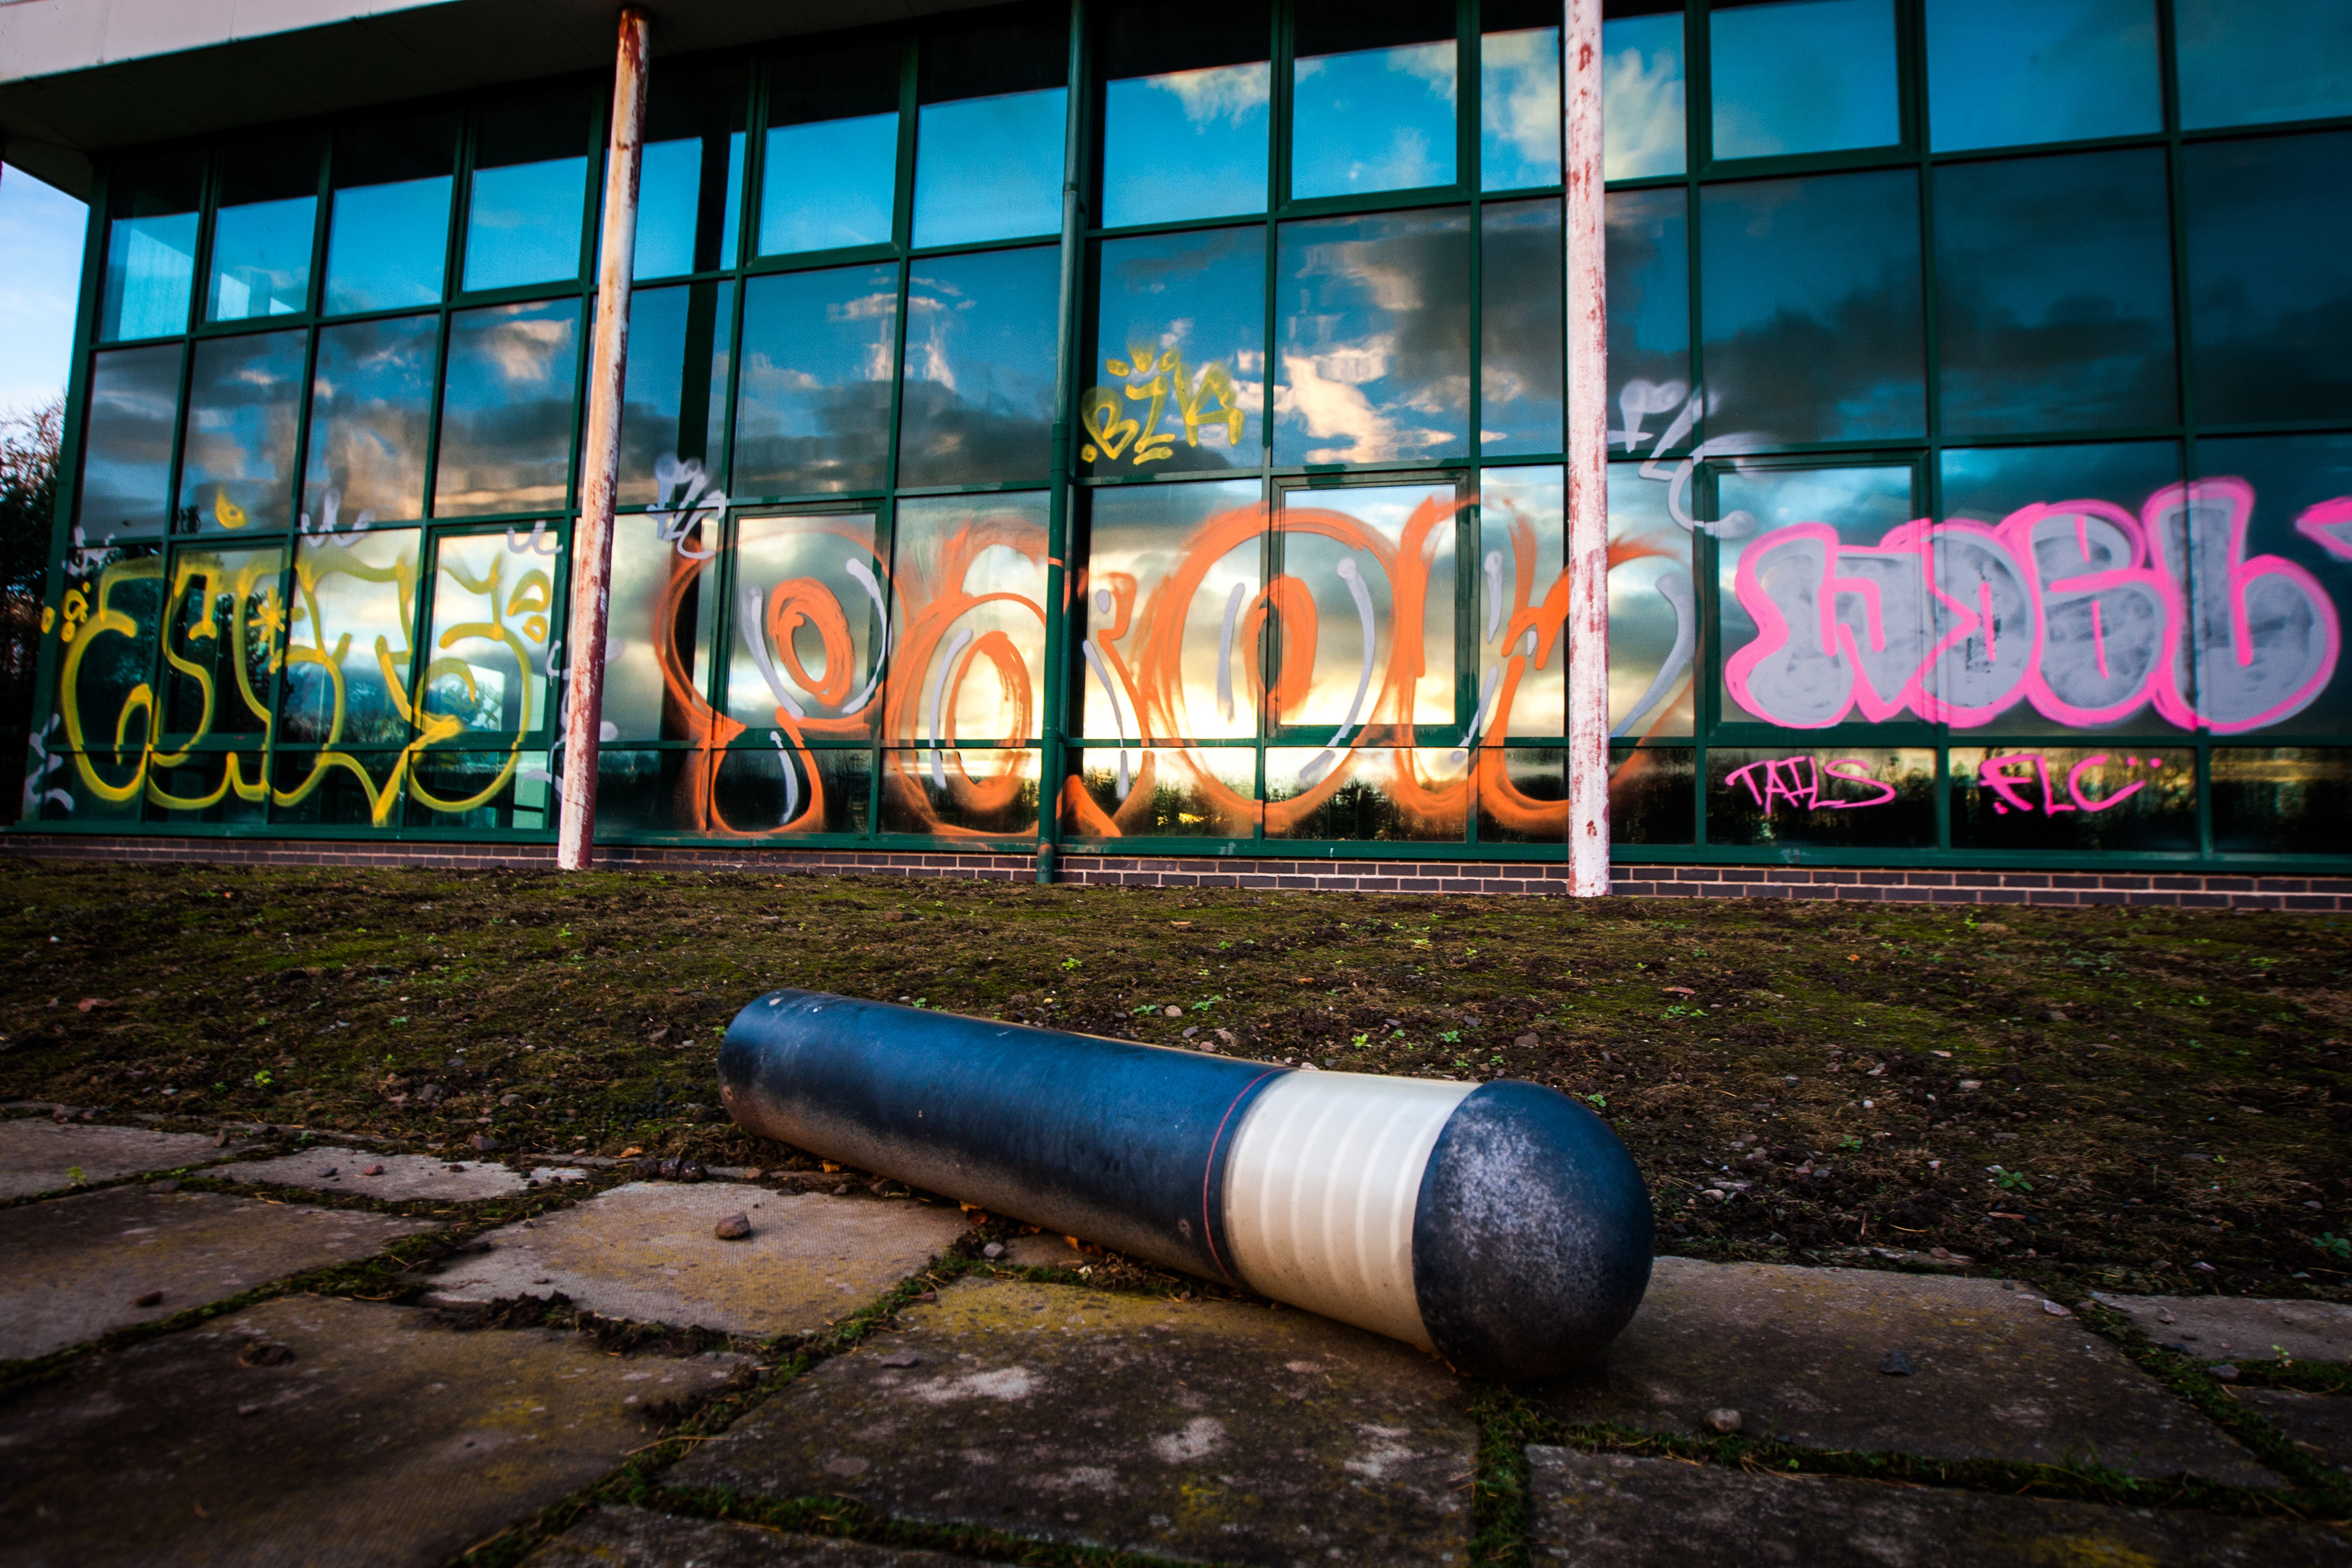 Councillor Keenan believes graffiti and weeds will put visitors off.